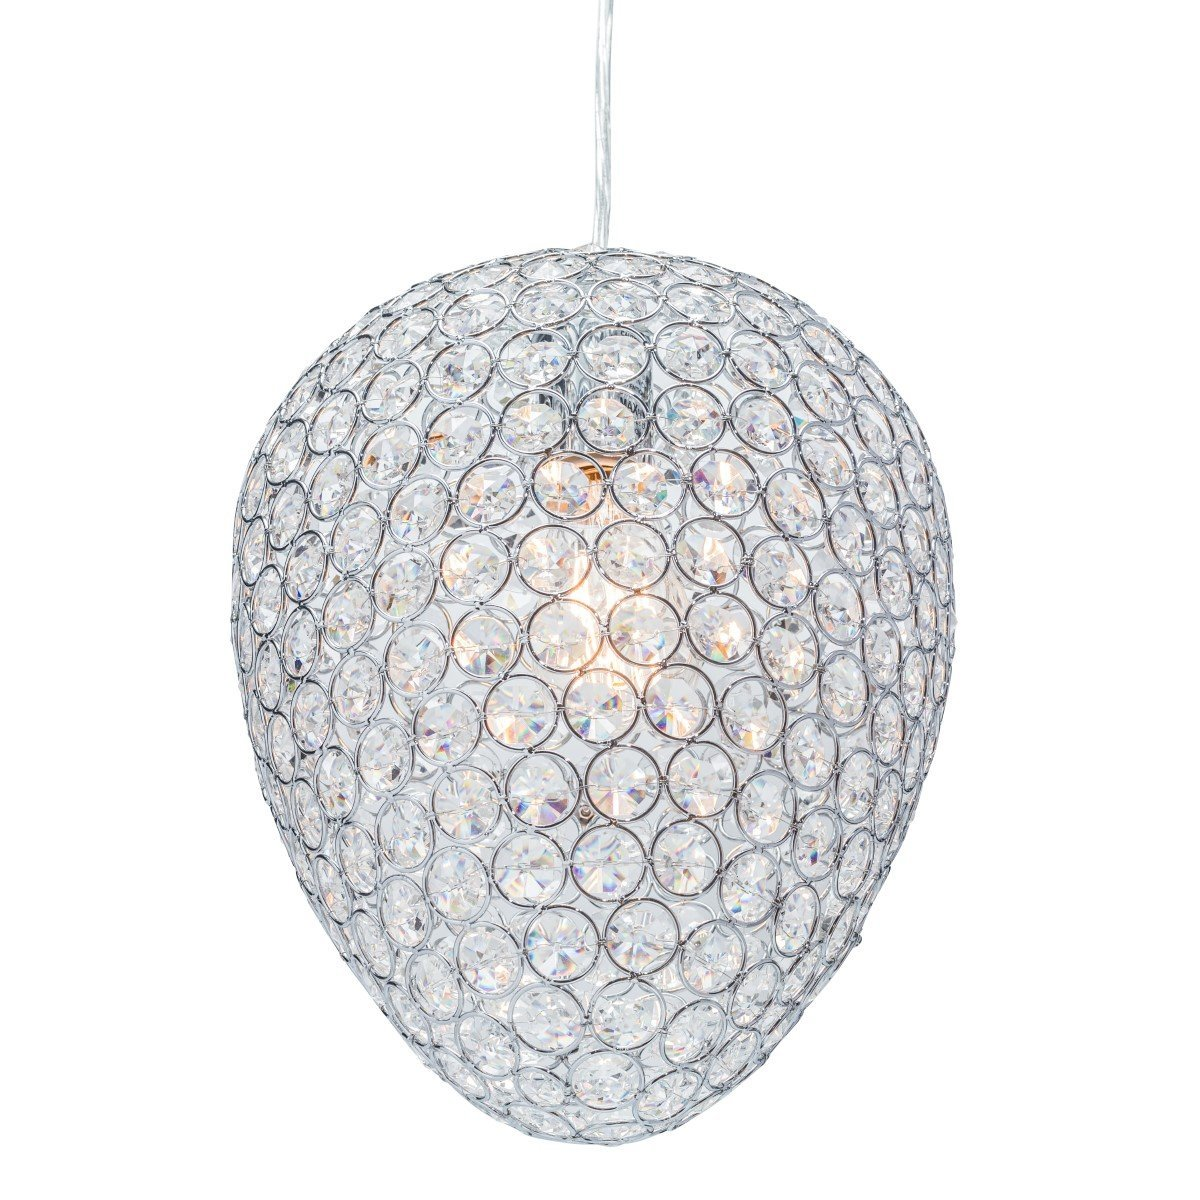 Globe Electric Trenton 1-Light Sparkling Masterpiece Pendant, Chrome Finish, Caged Crystal Shade, 65087